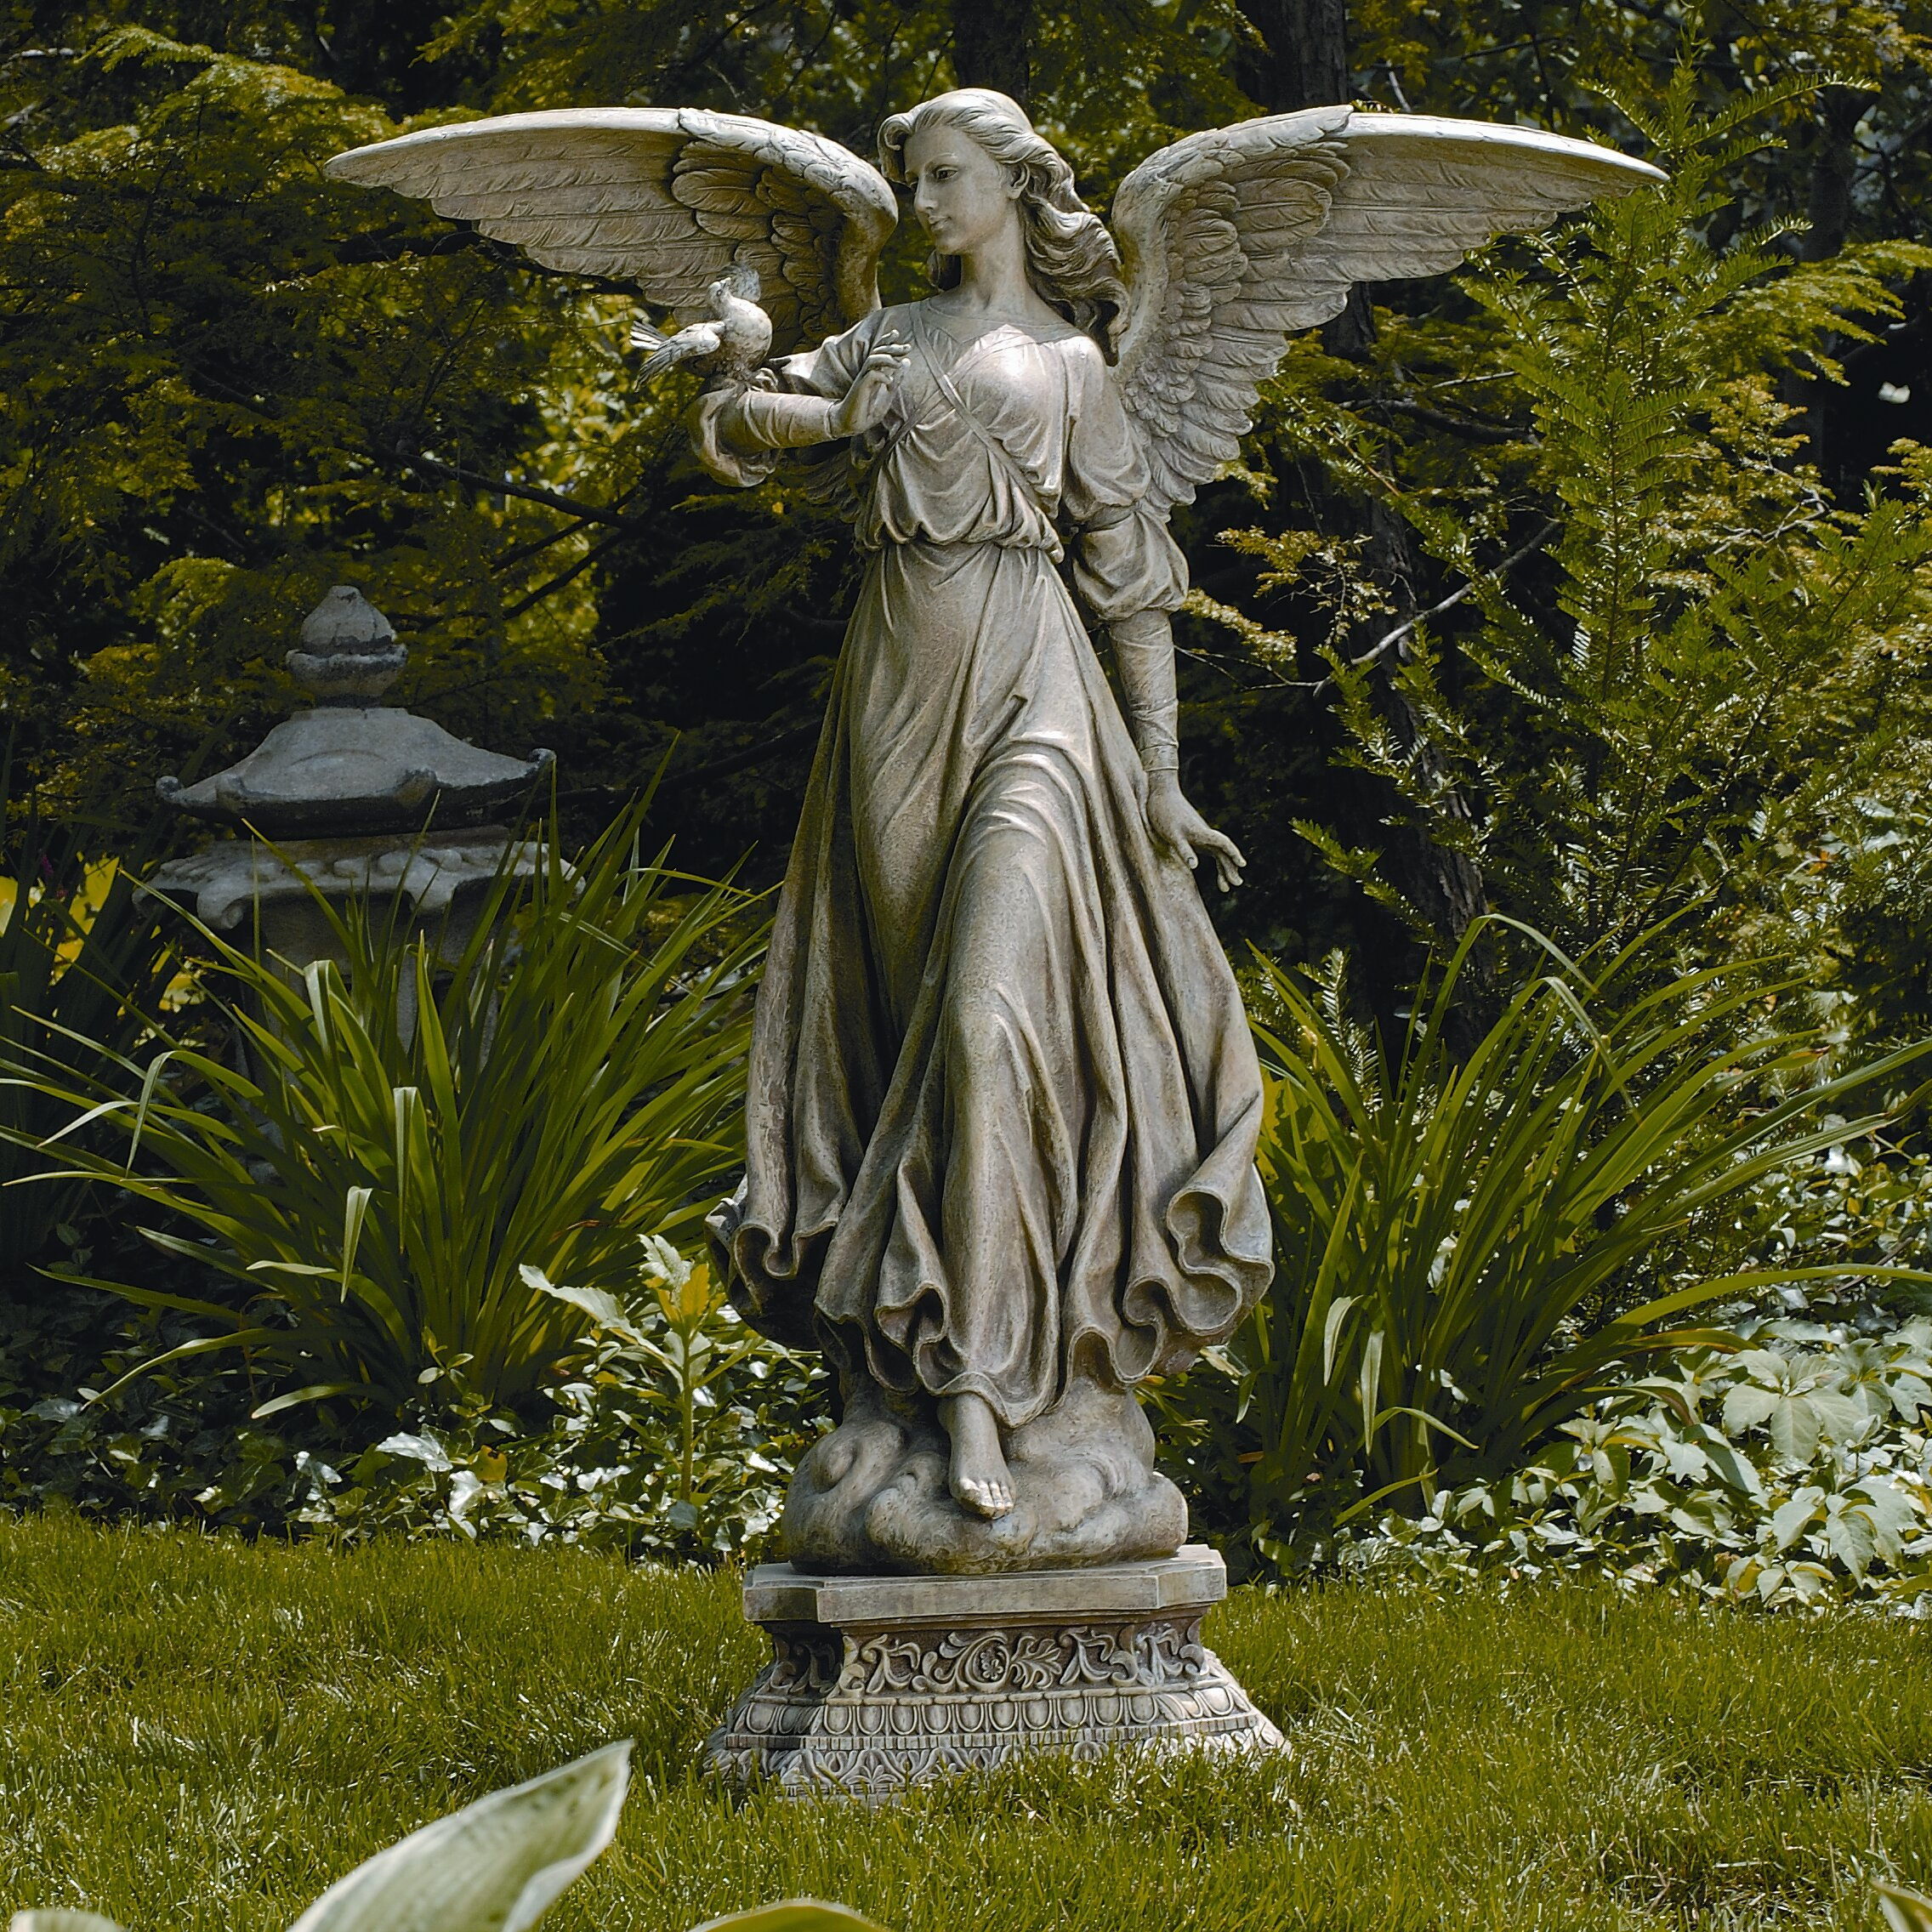 The angel statue, again: inspiration for a writer